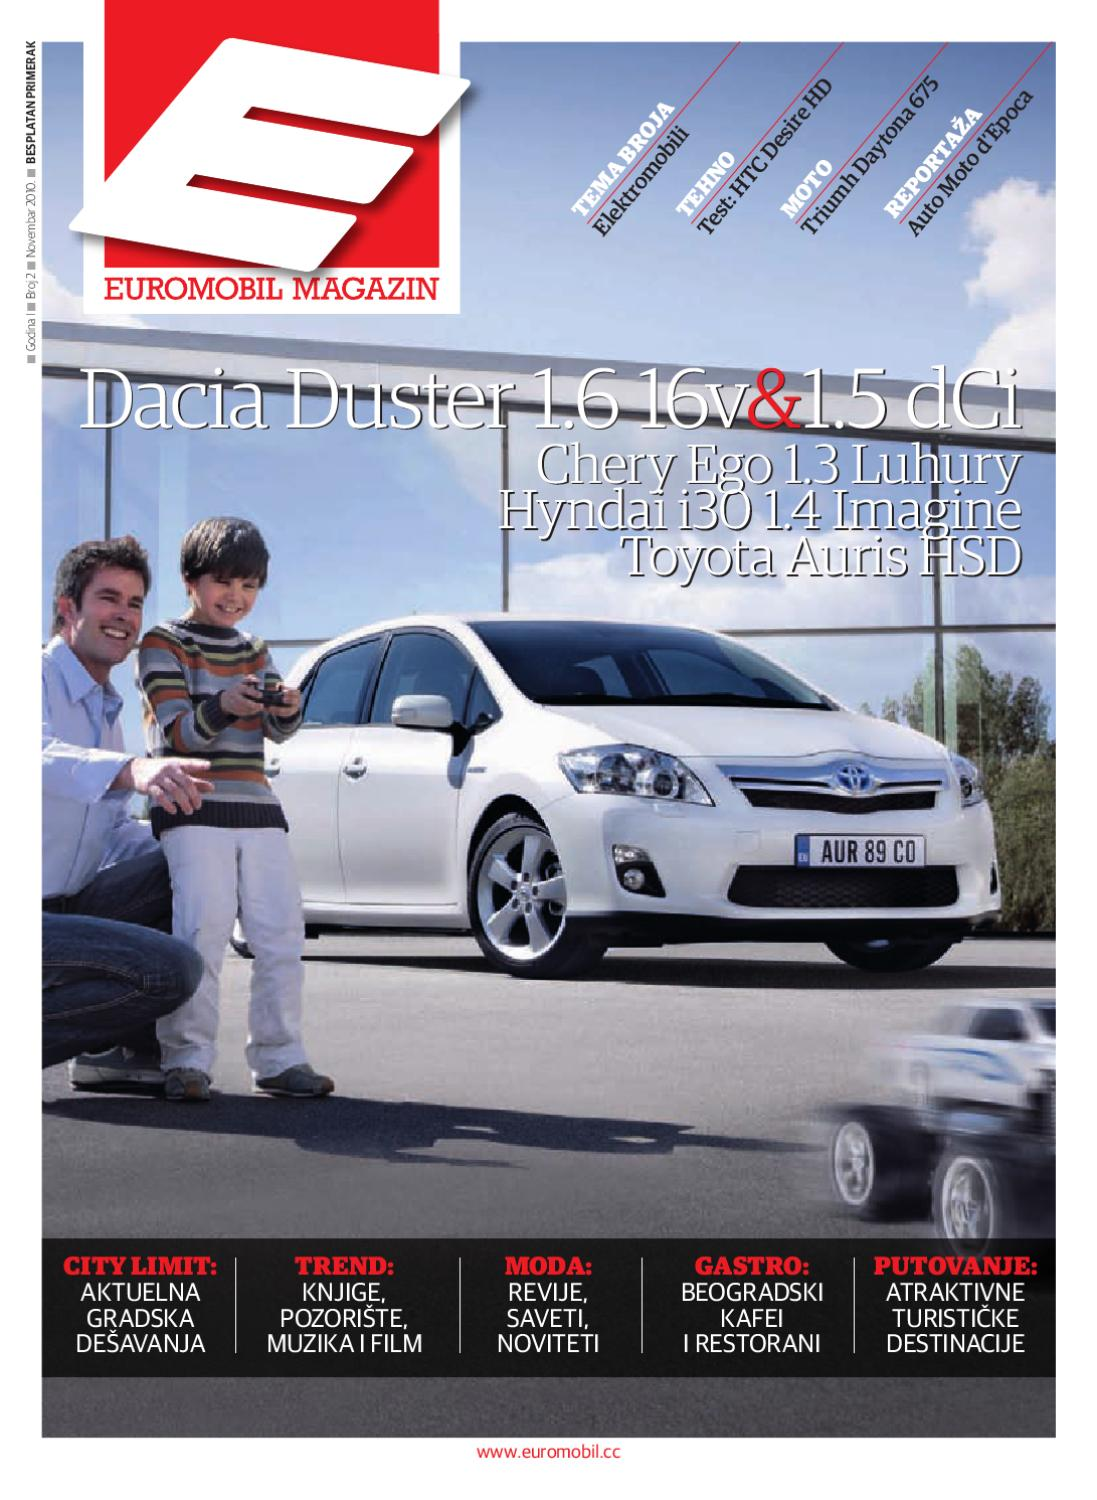 Euromobil magazin 02 by euromobil media group issuu for Euromobil 02